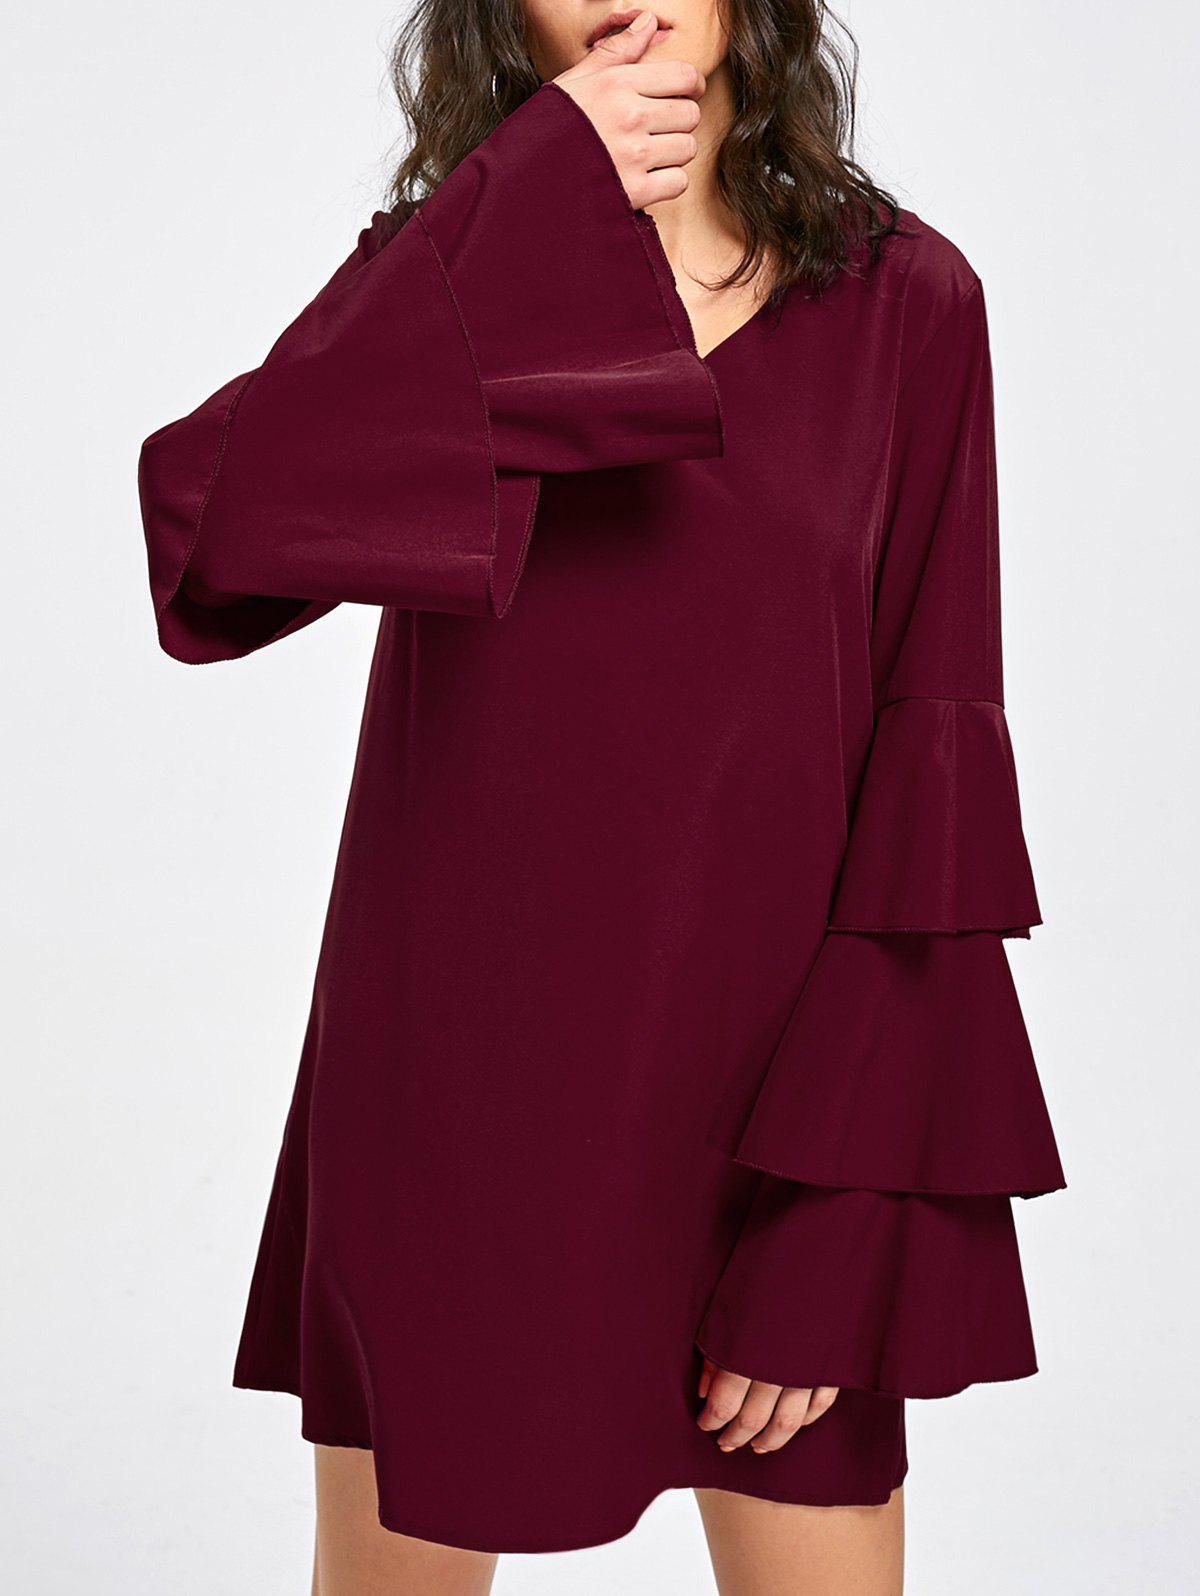 Hot Layered Flare Sleeve V Neck Dress